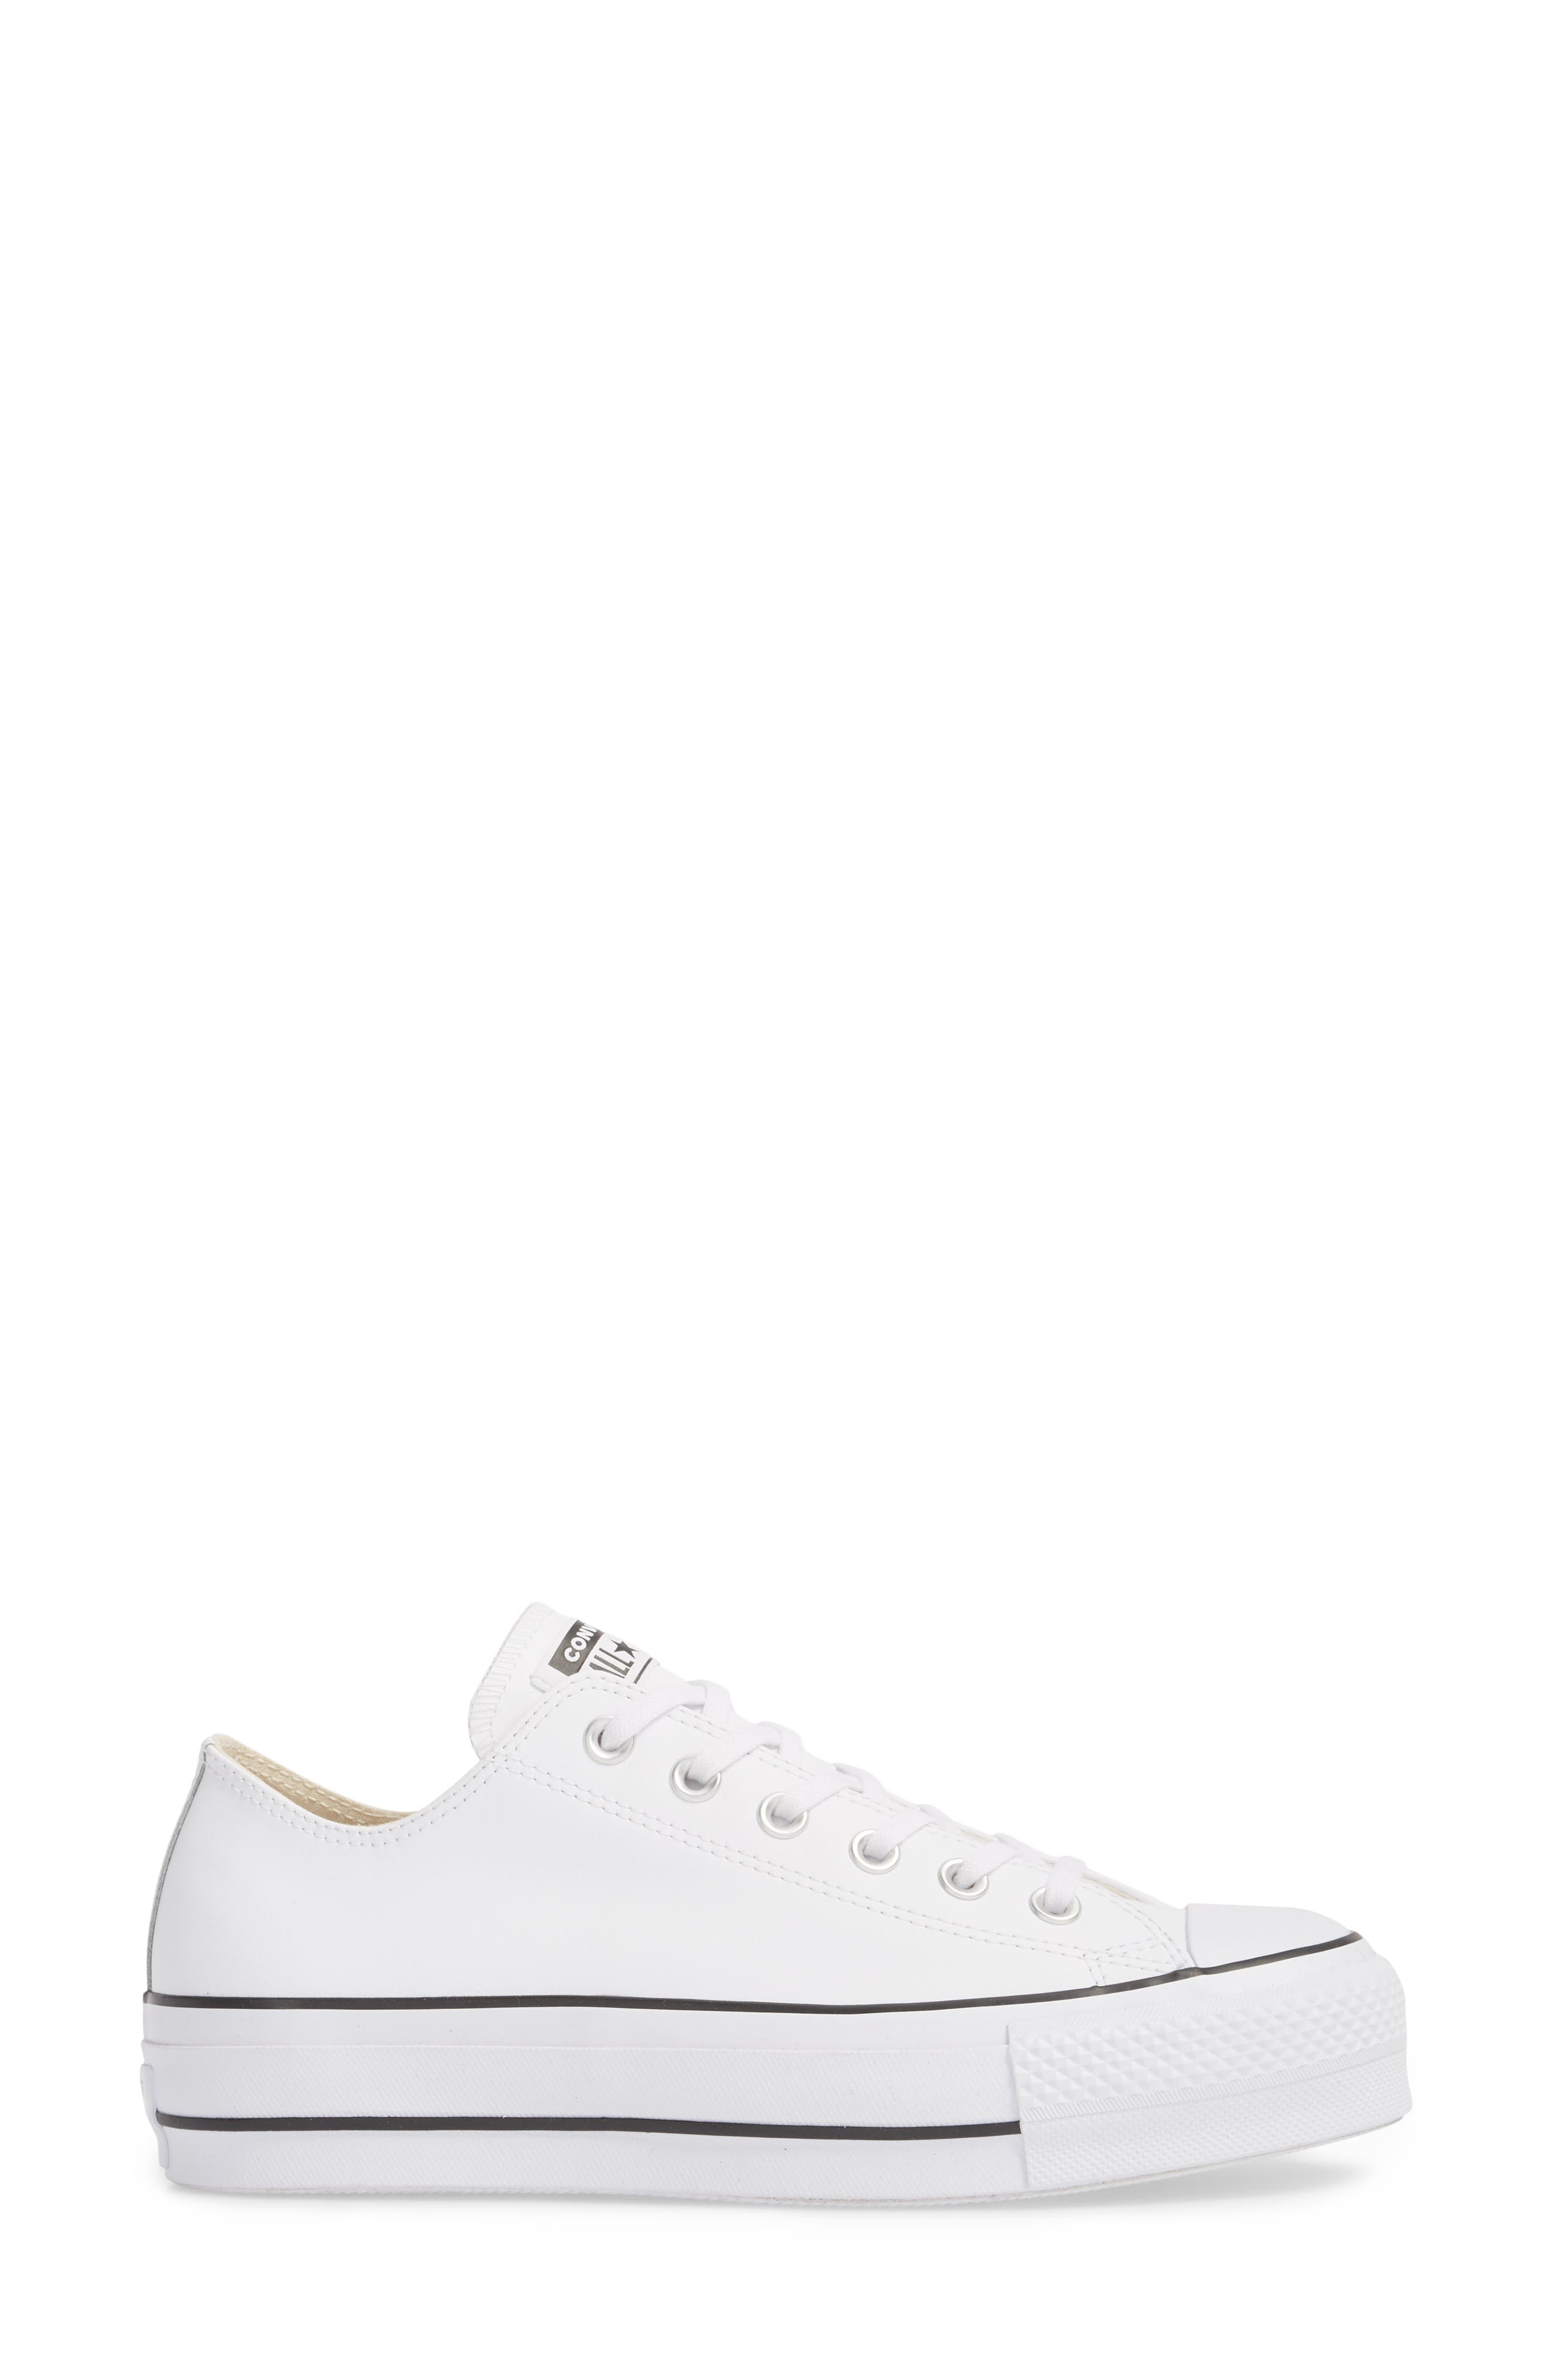 Chuck Taylor<sup>®</sup> All Star<sup>®</sup> Platform Sneaker,                             Alternate thumbnail 3, color,                             WHITE LEATHER